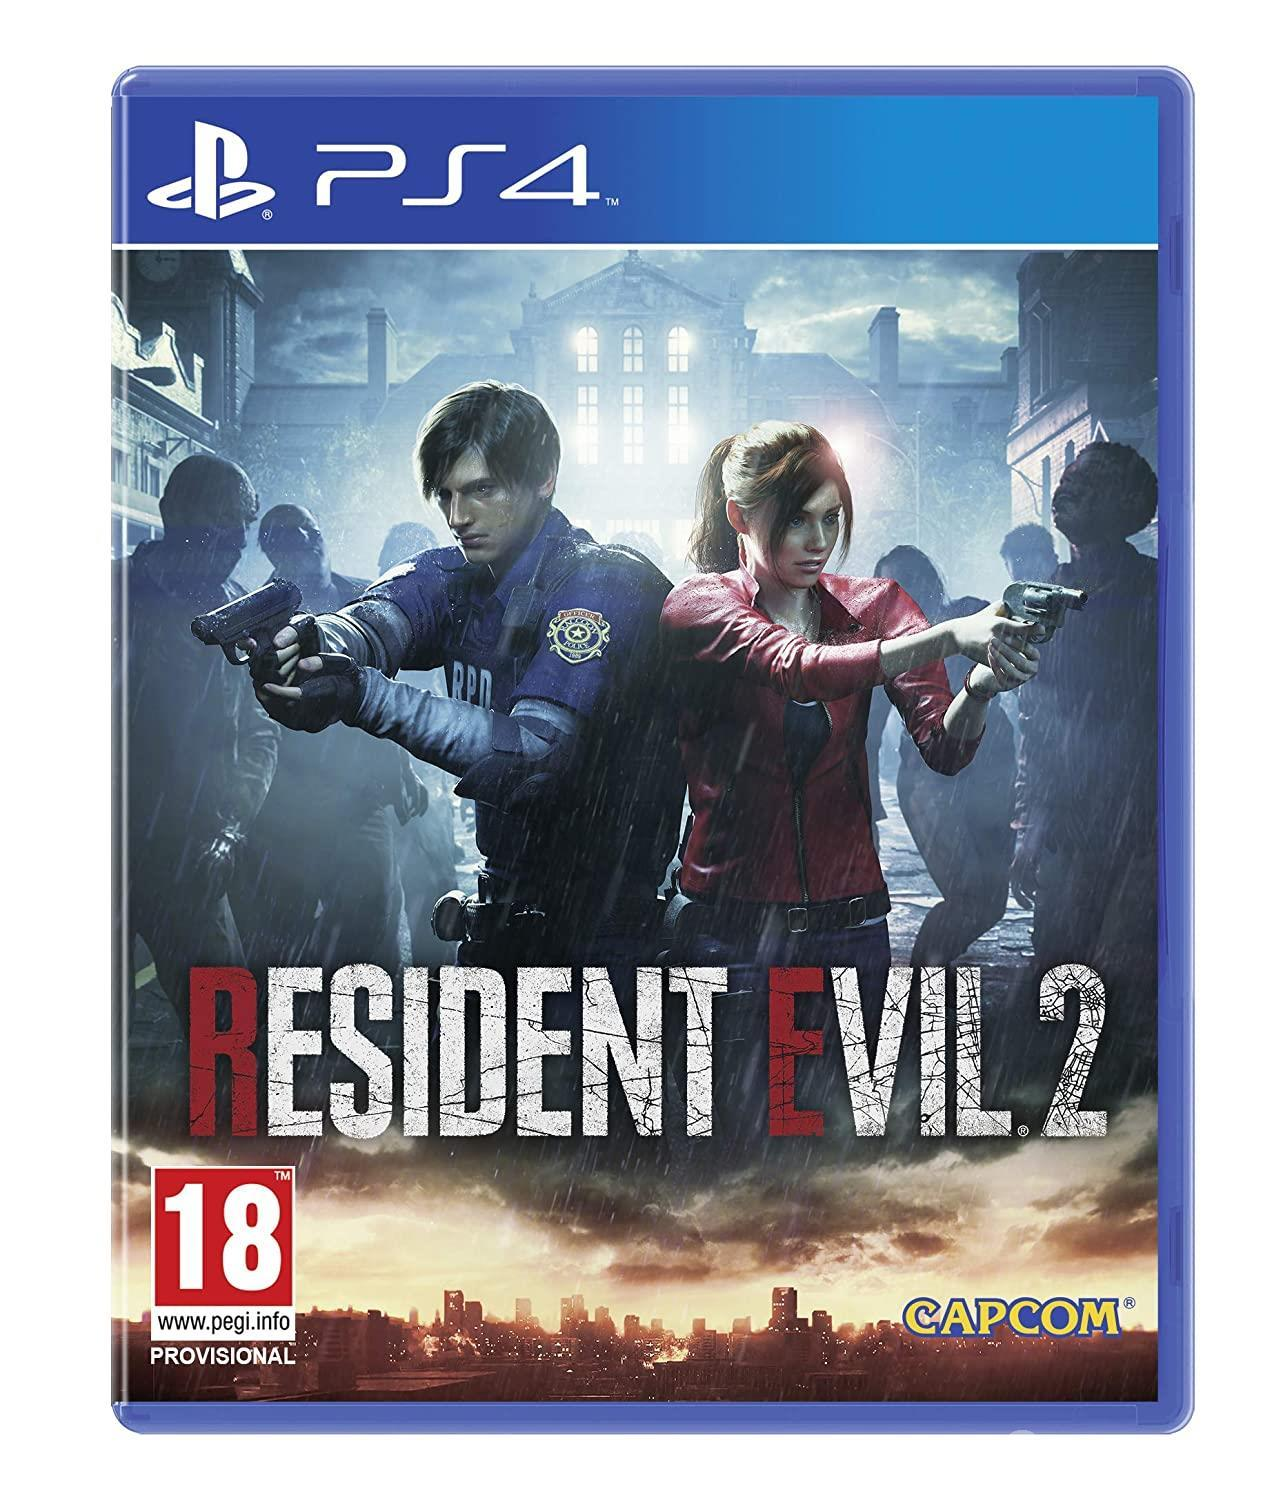 Resident Evil 2 - low horror game available to spend time with.